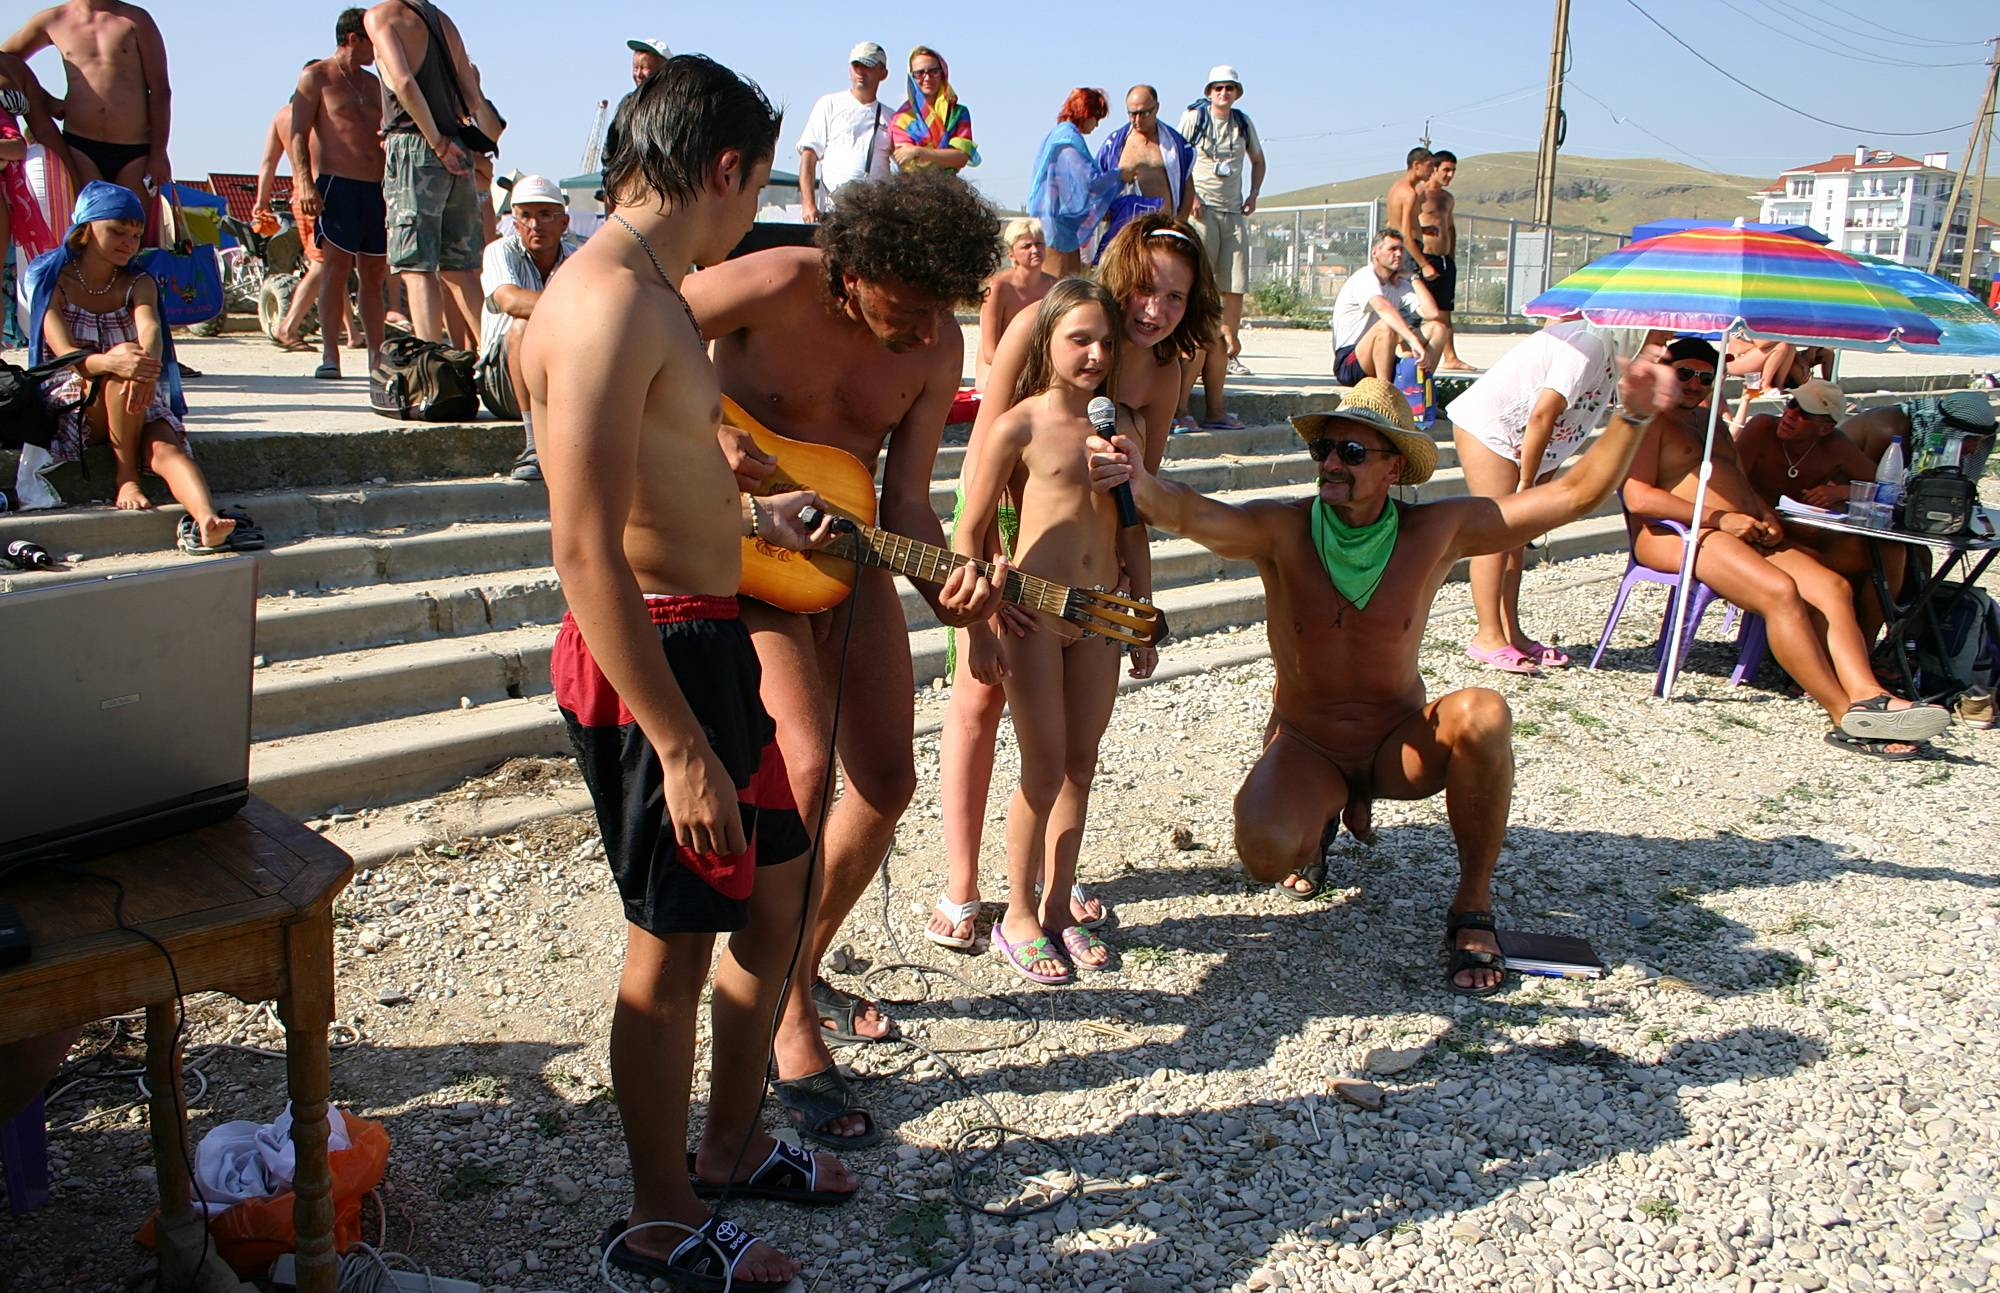 Pure Nudism Photos Nude Party By The Steps - 1